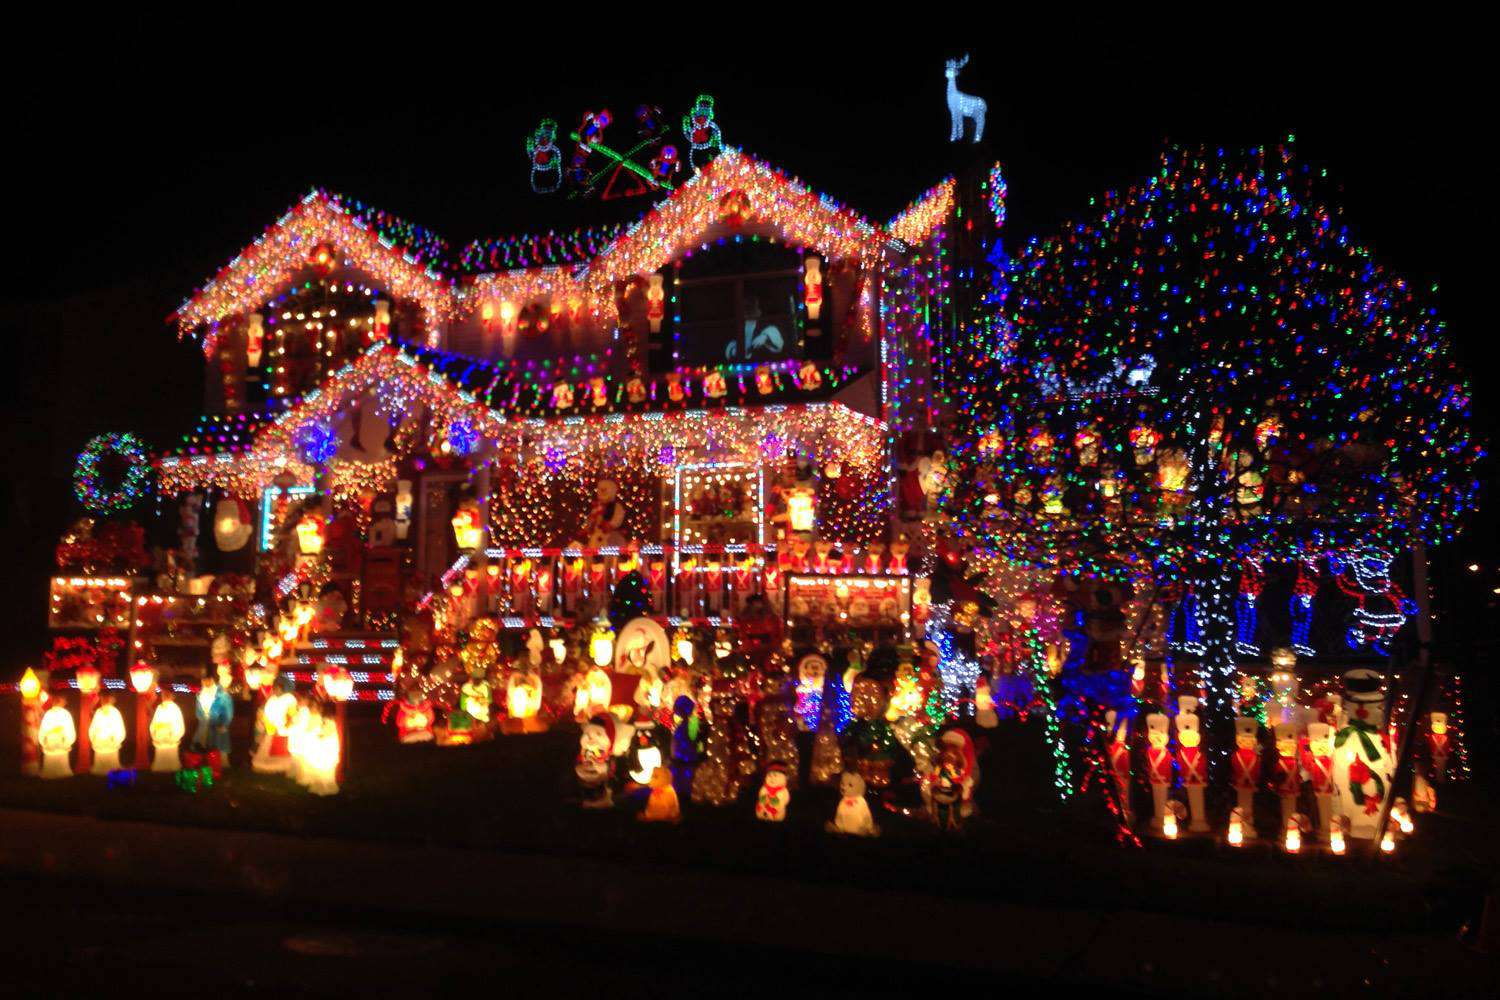 National Christmas Lights Day Wishes Images